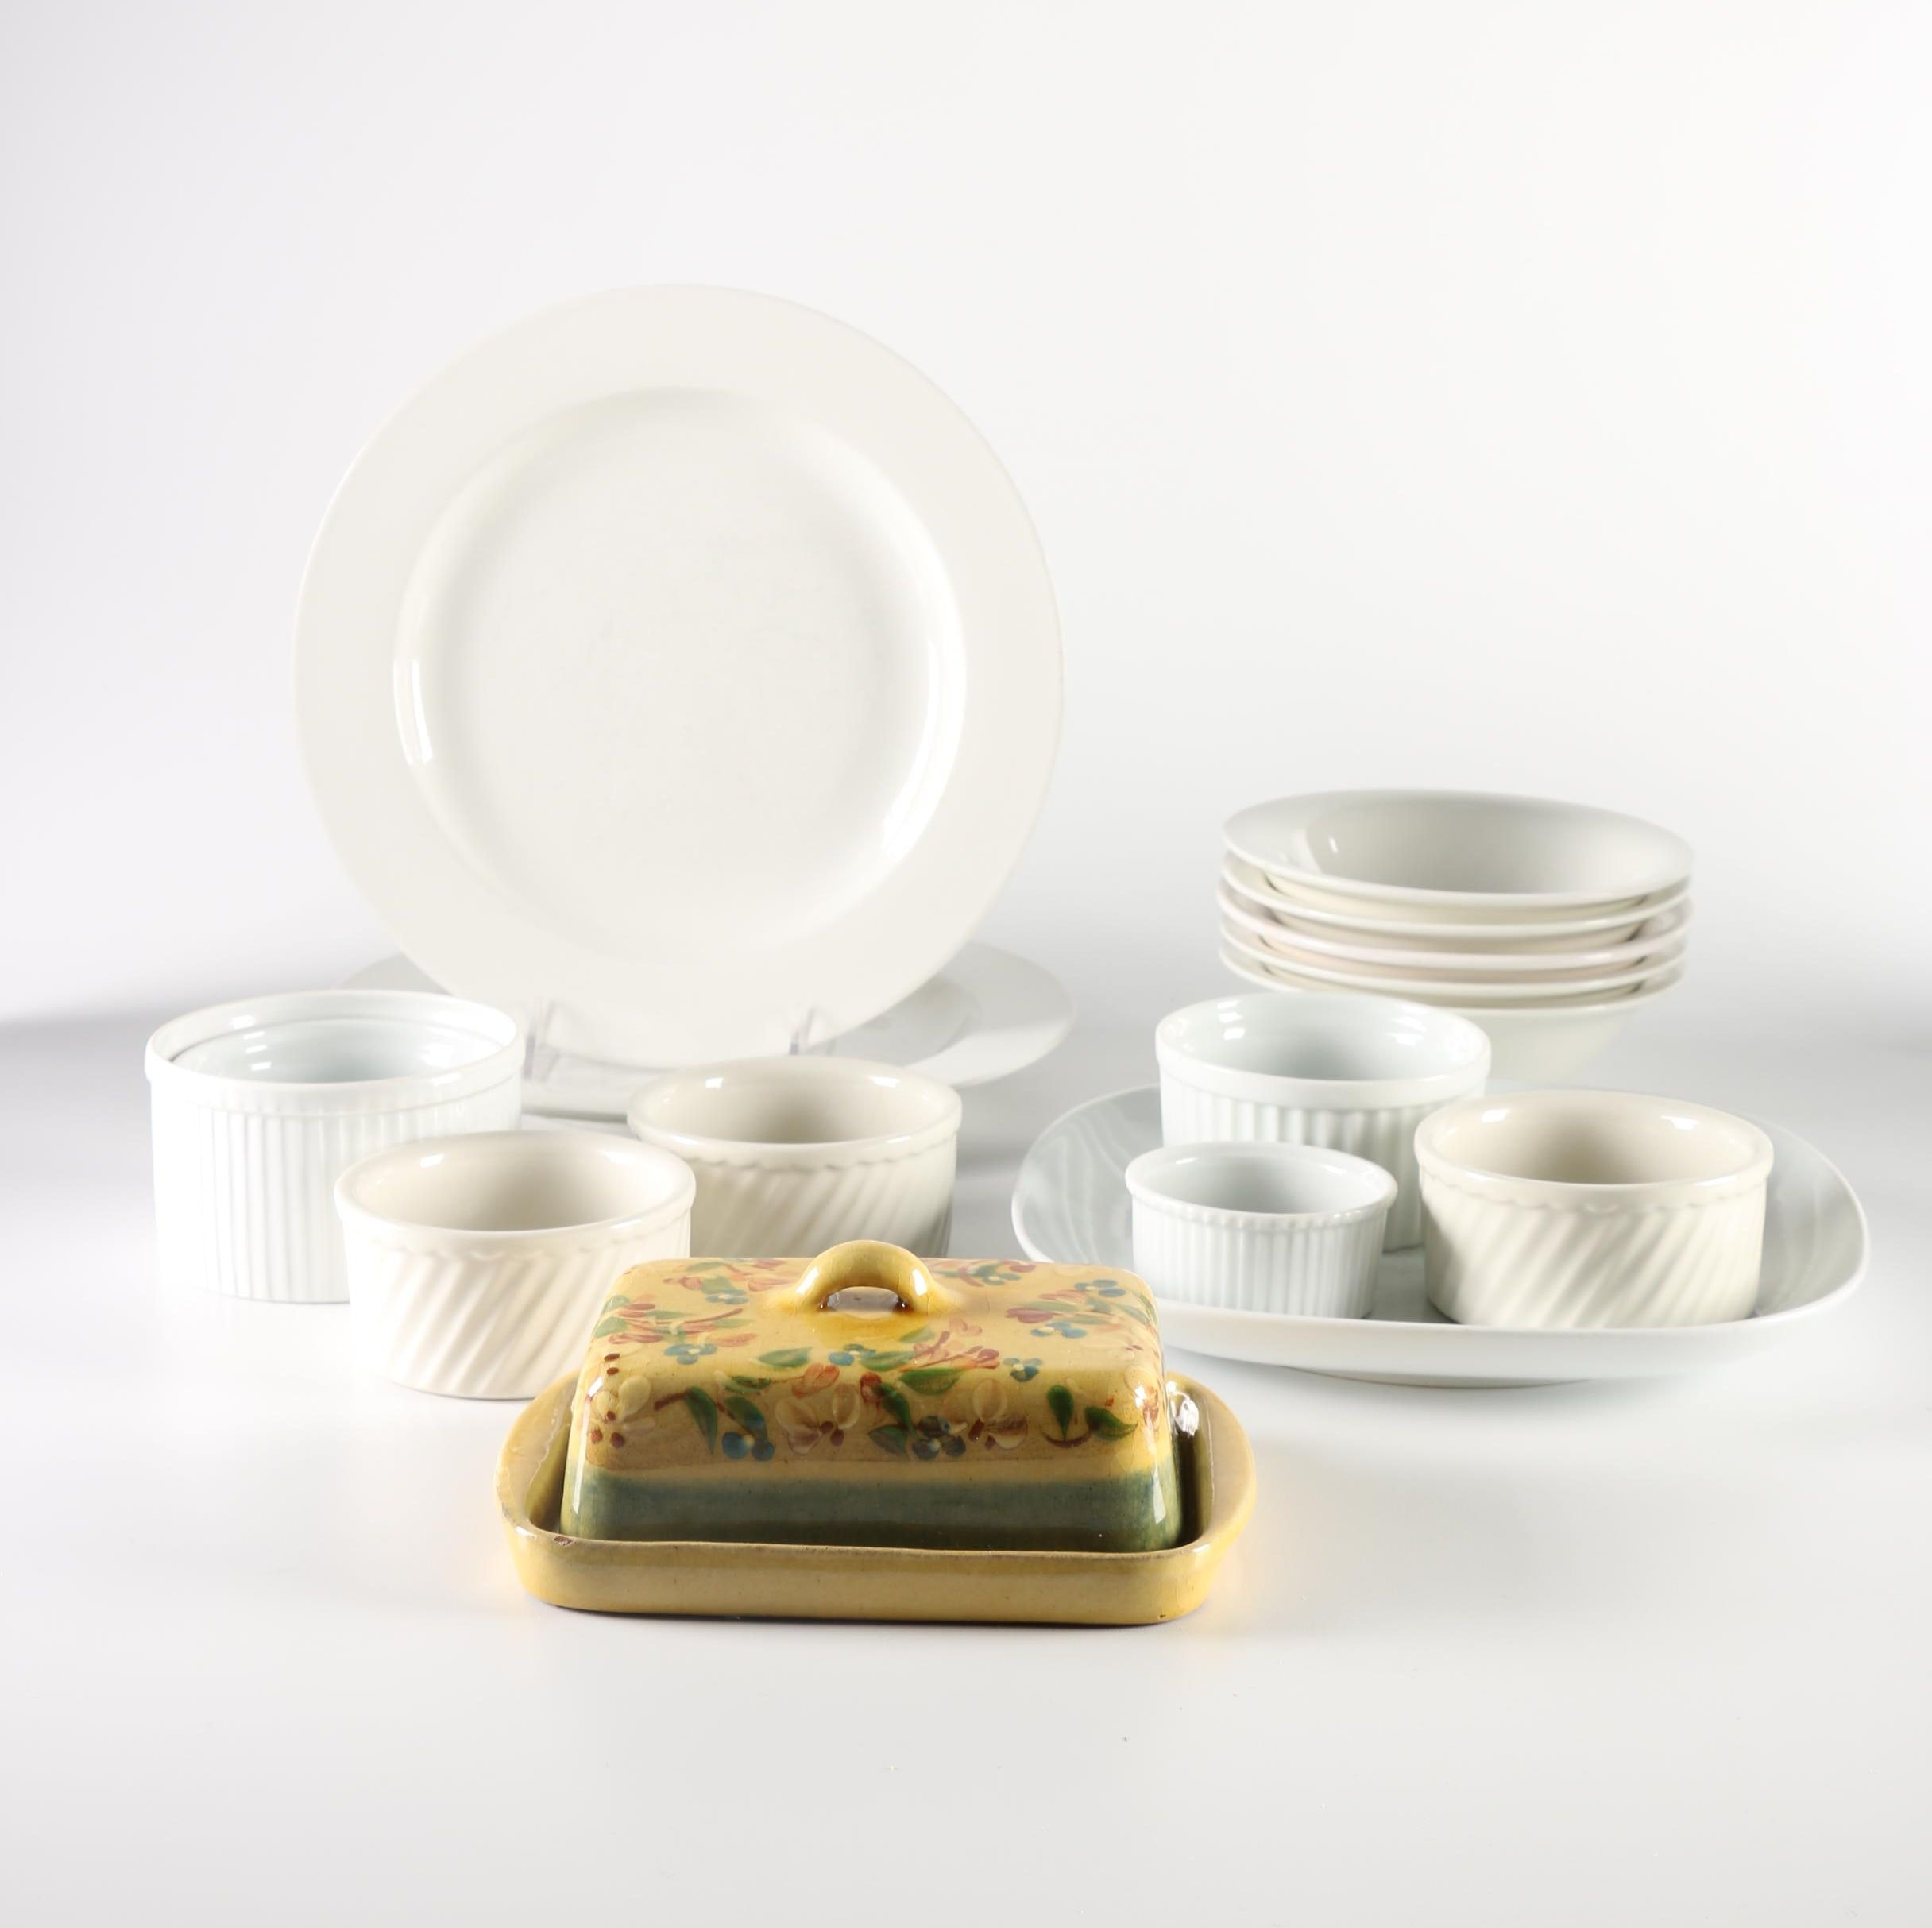 Ceramic Tableware Collection and Floral Butter Dish